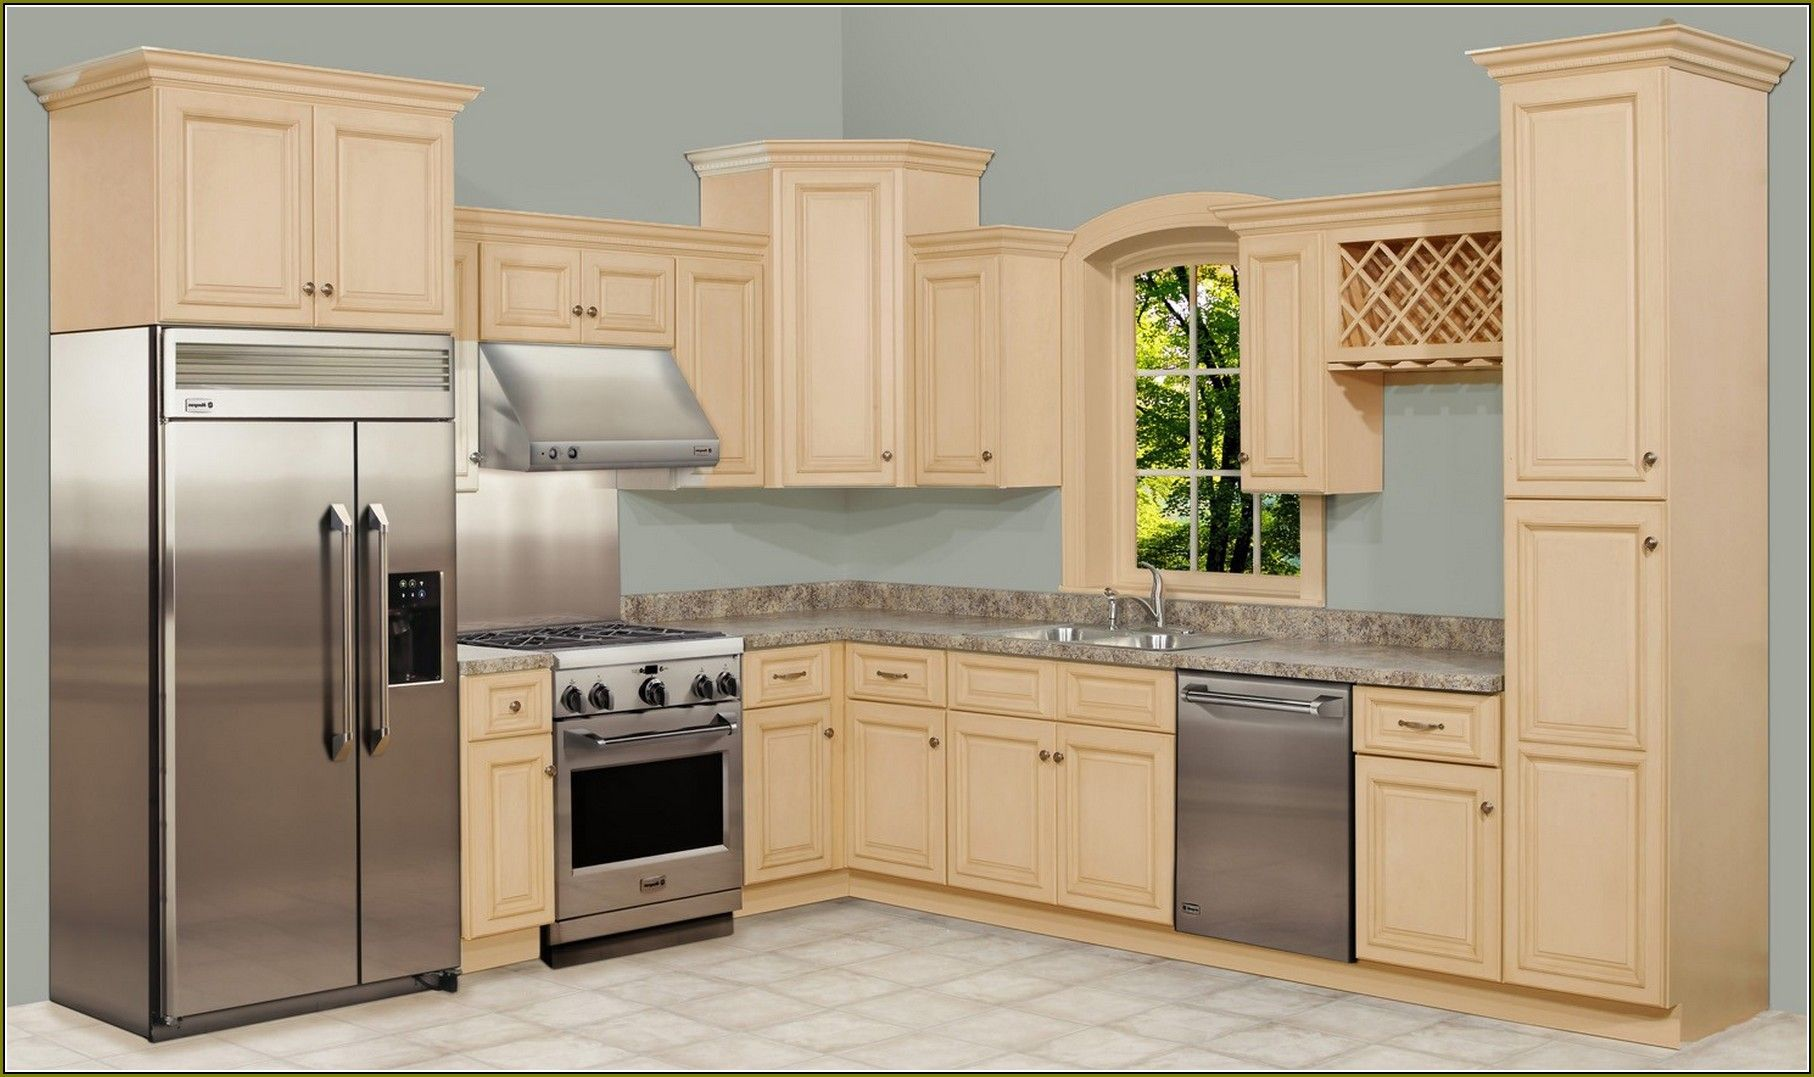 Inspirational Home Depot Tall Kitchen The Most